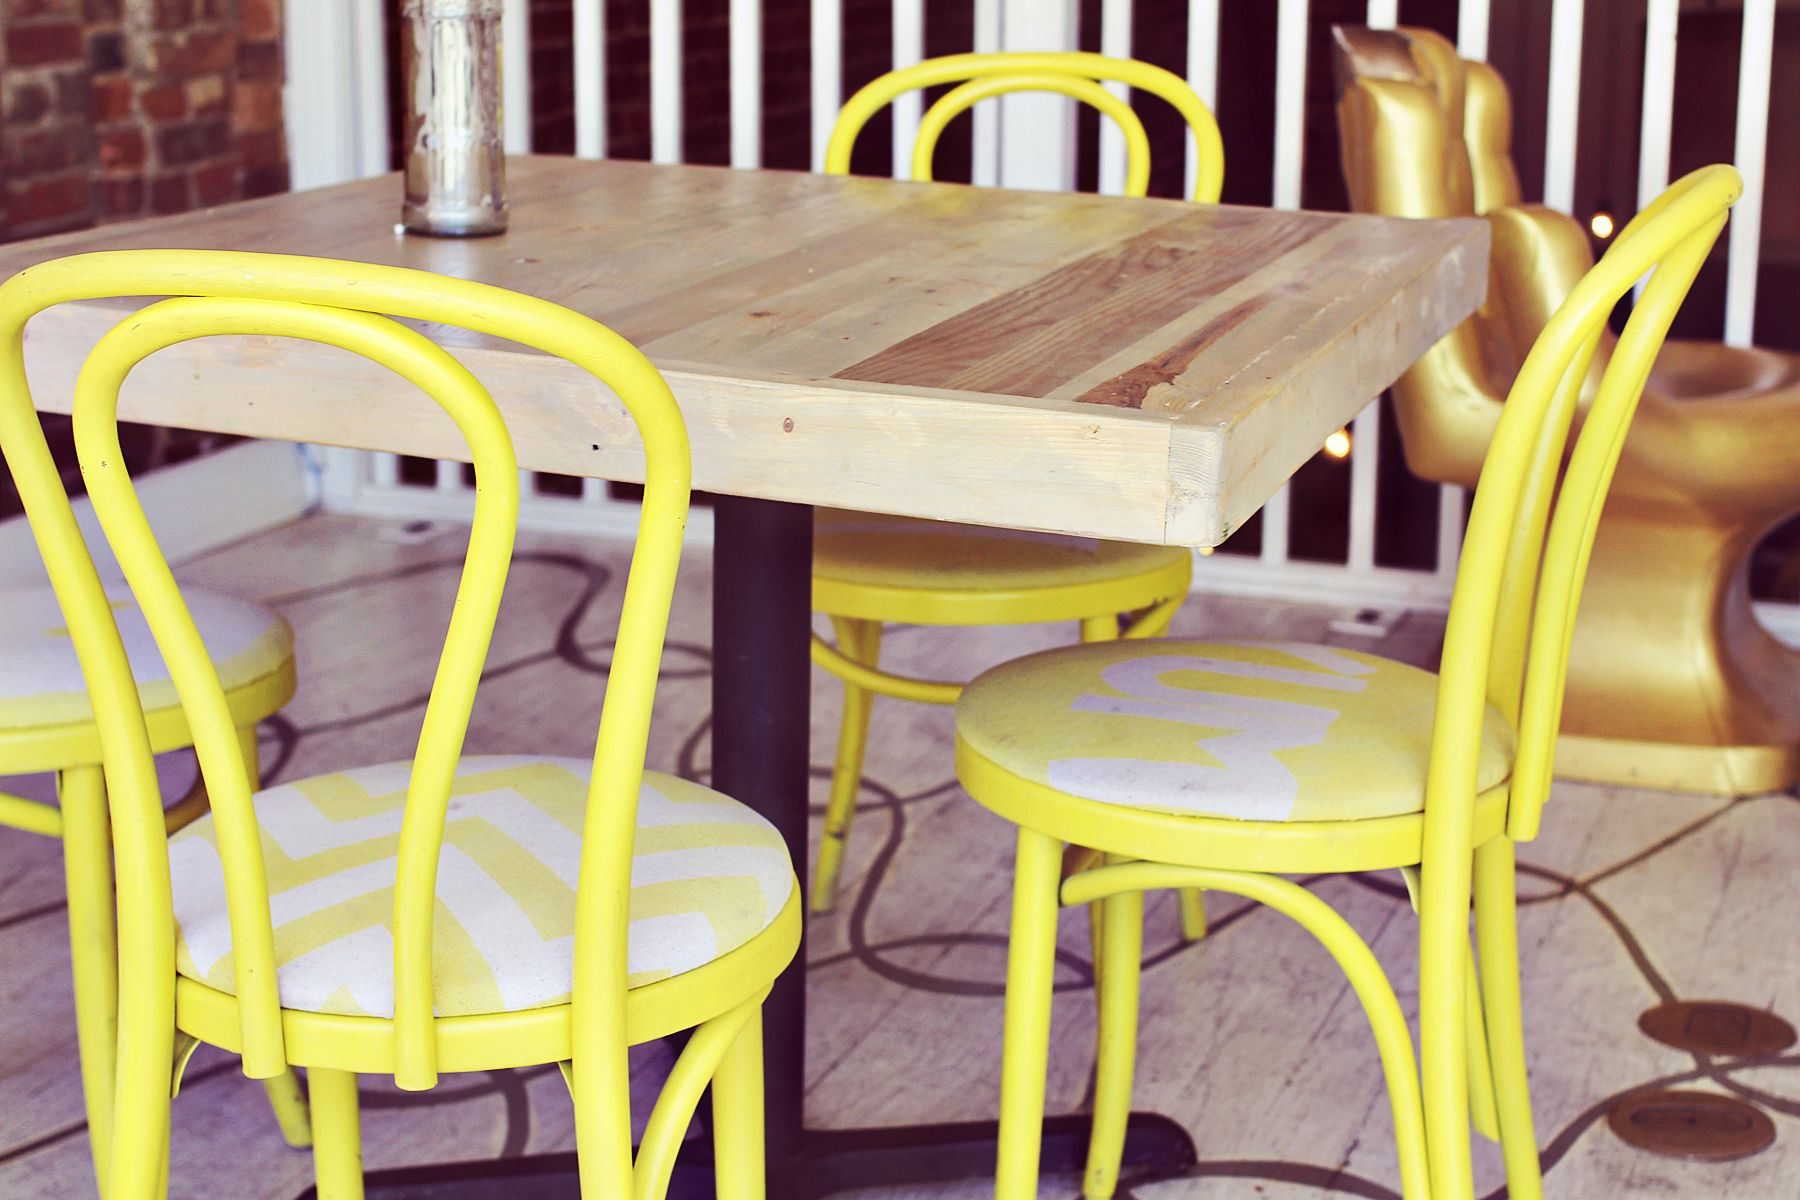 DIY Chair could repaint the chairs we have with neon paint and ...